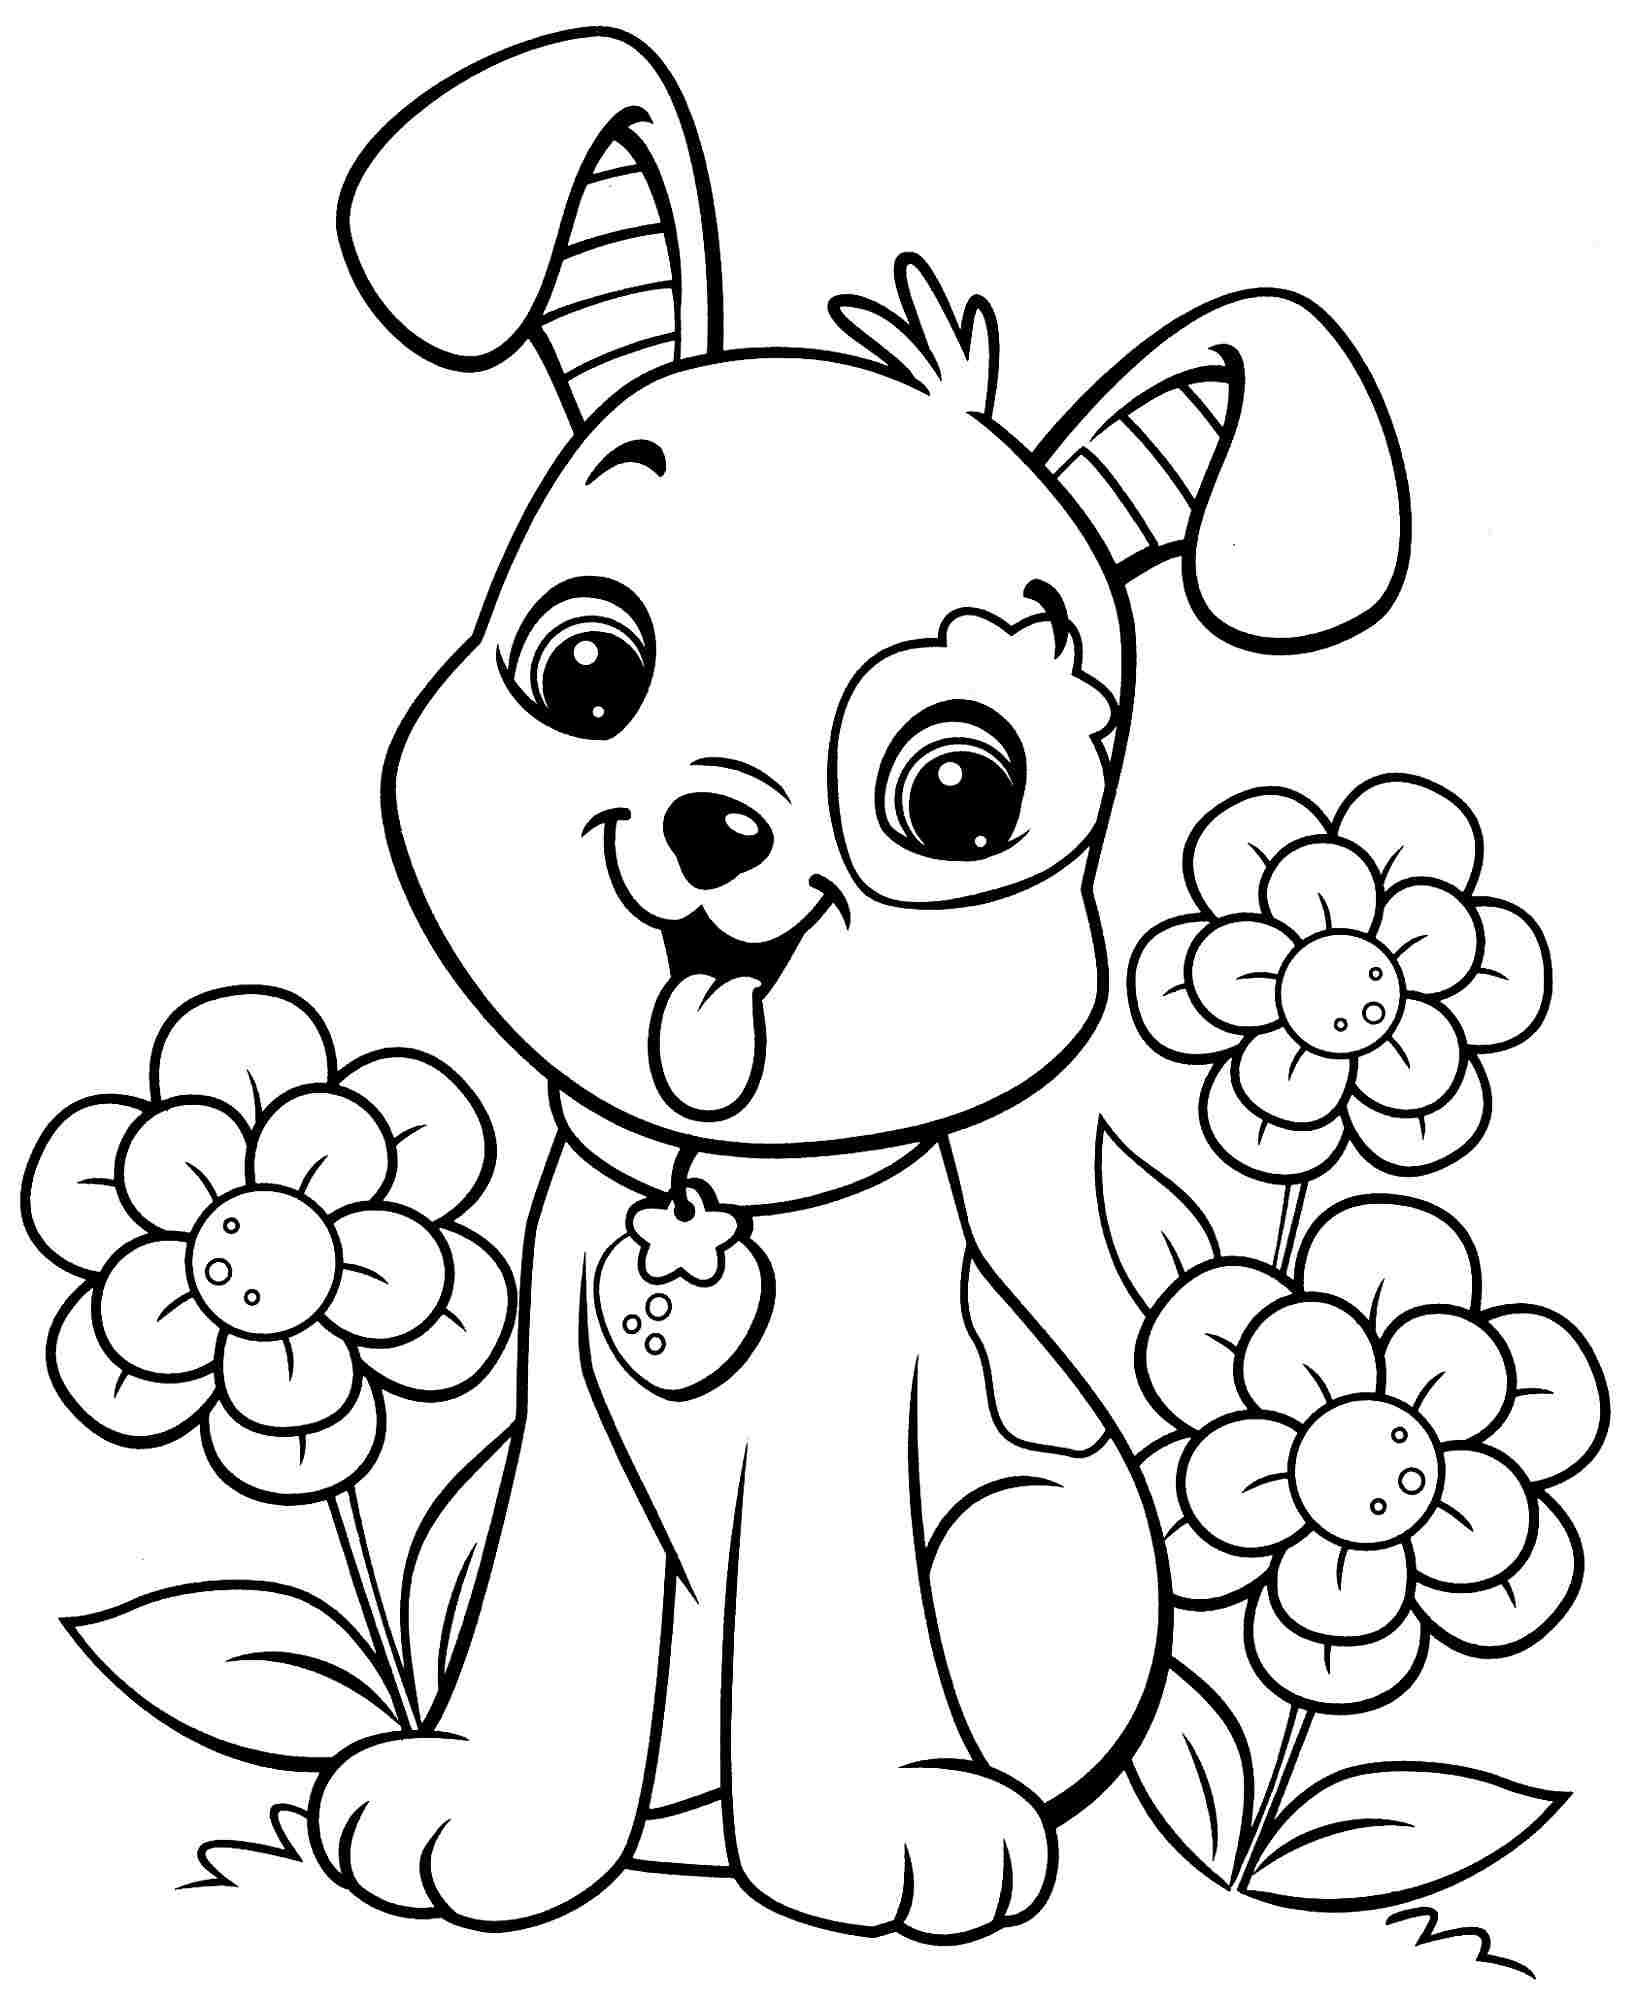 Animal Friends Coloring Page